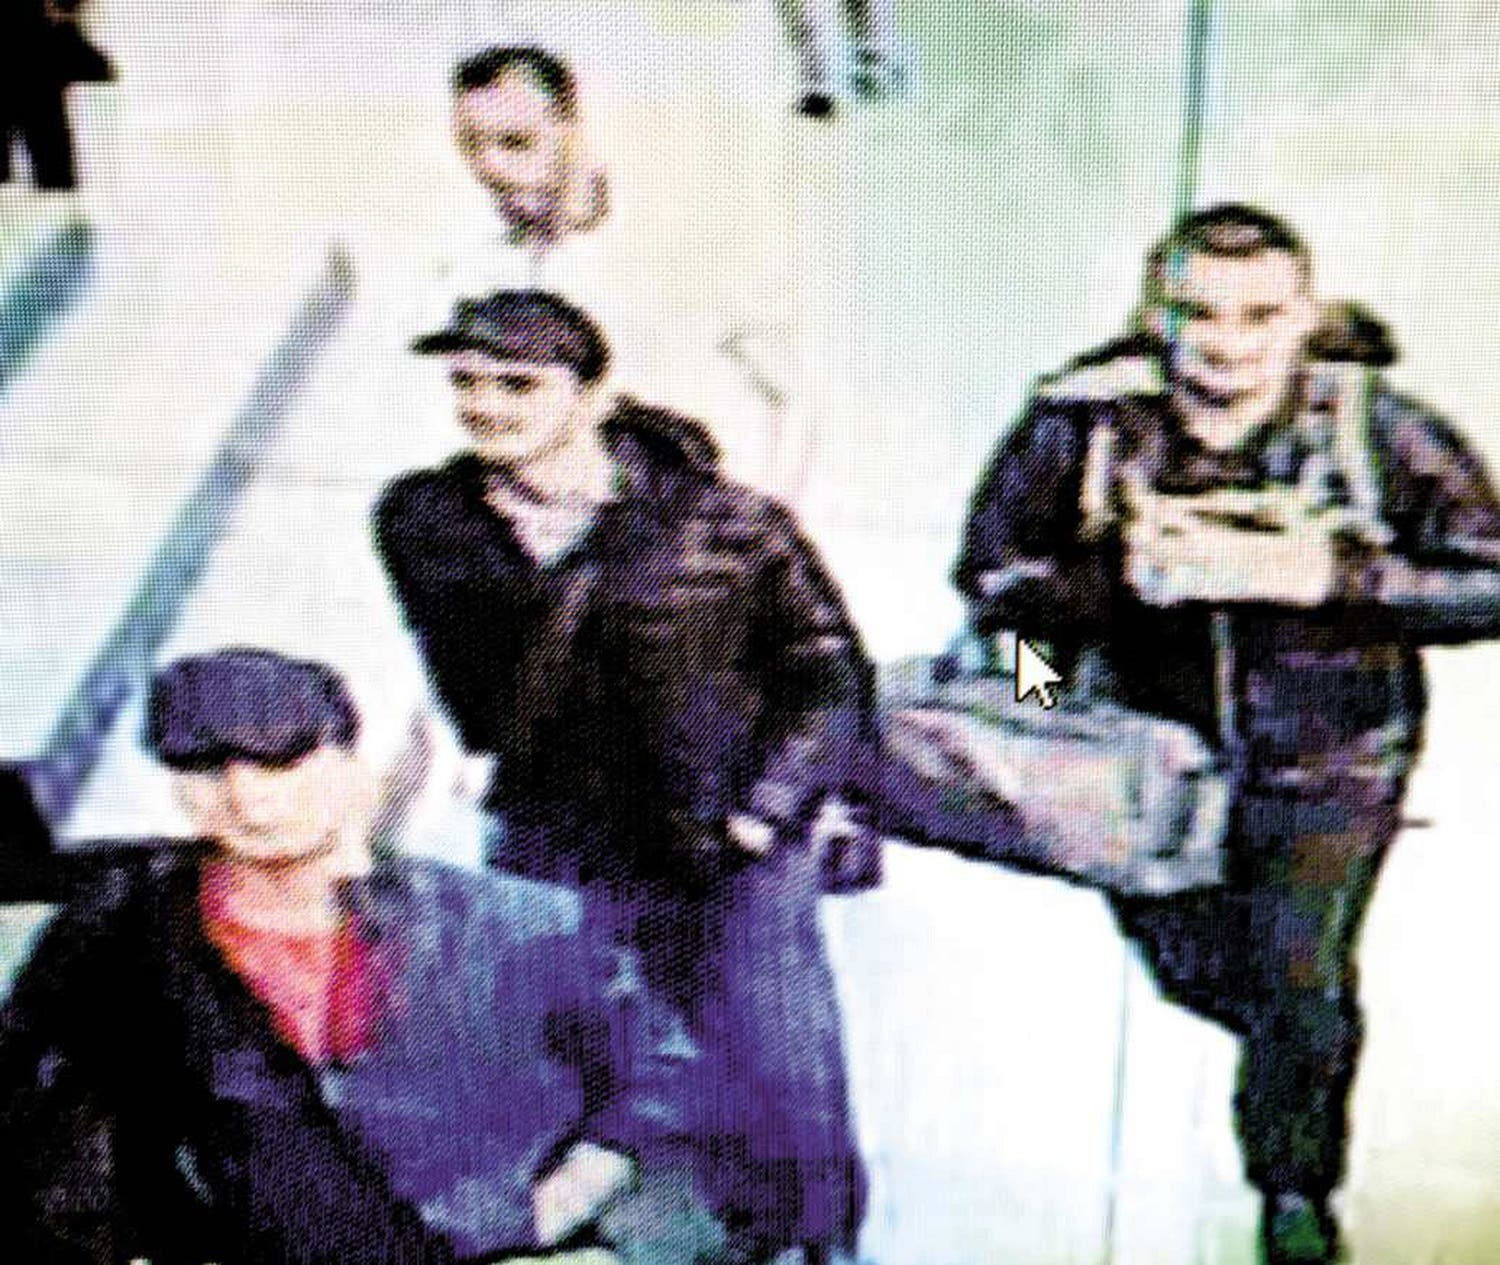 In this framegrab from CCTV video, made available by Turkish police on June 30, 2016, three men (front, in black) believed to be the attackers, walk in Istanbul's Ataturk airport on June 28, 2016 (Photo: Handout/ Istanbul Police Headquarters/AFP)